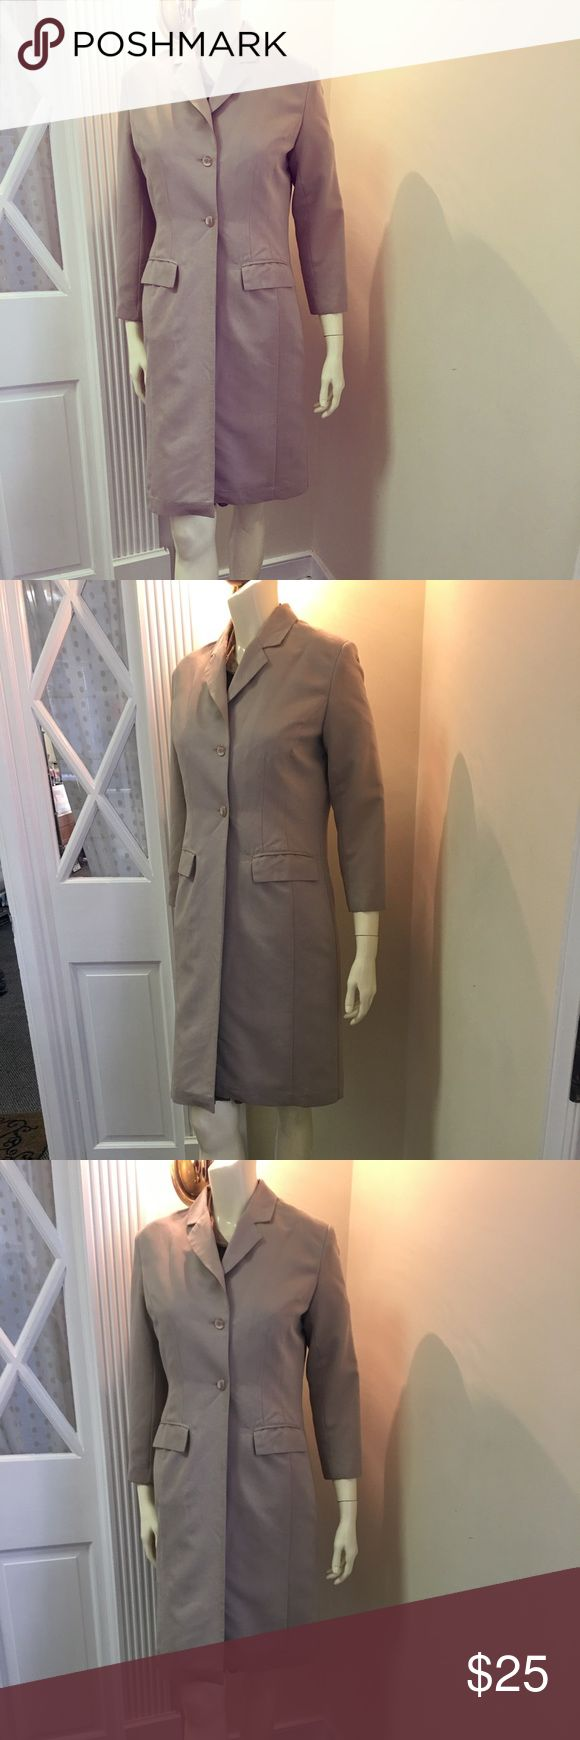 Boutique Blazer Women's Beige Europa Blazer  (Size 4)  Brand; Boutique Europa  Material; 70% Rayon 30% Polyester  Care; Dry Clean Only Boutique Europa Jackets & Coats Blazers